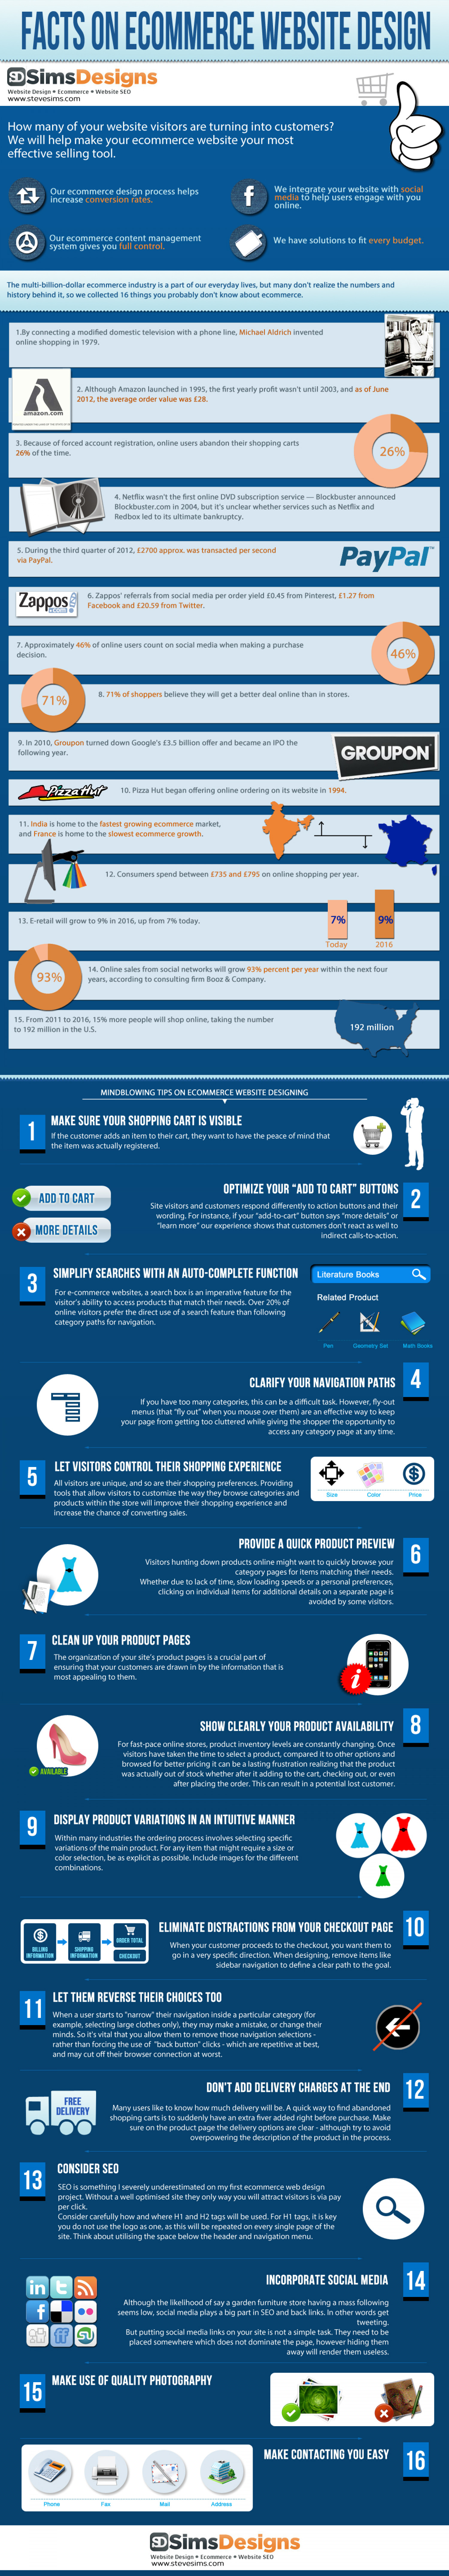 Ecommerce web design infographic Infographic